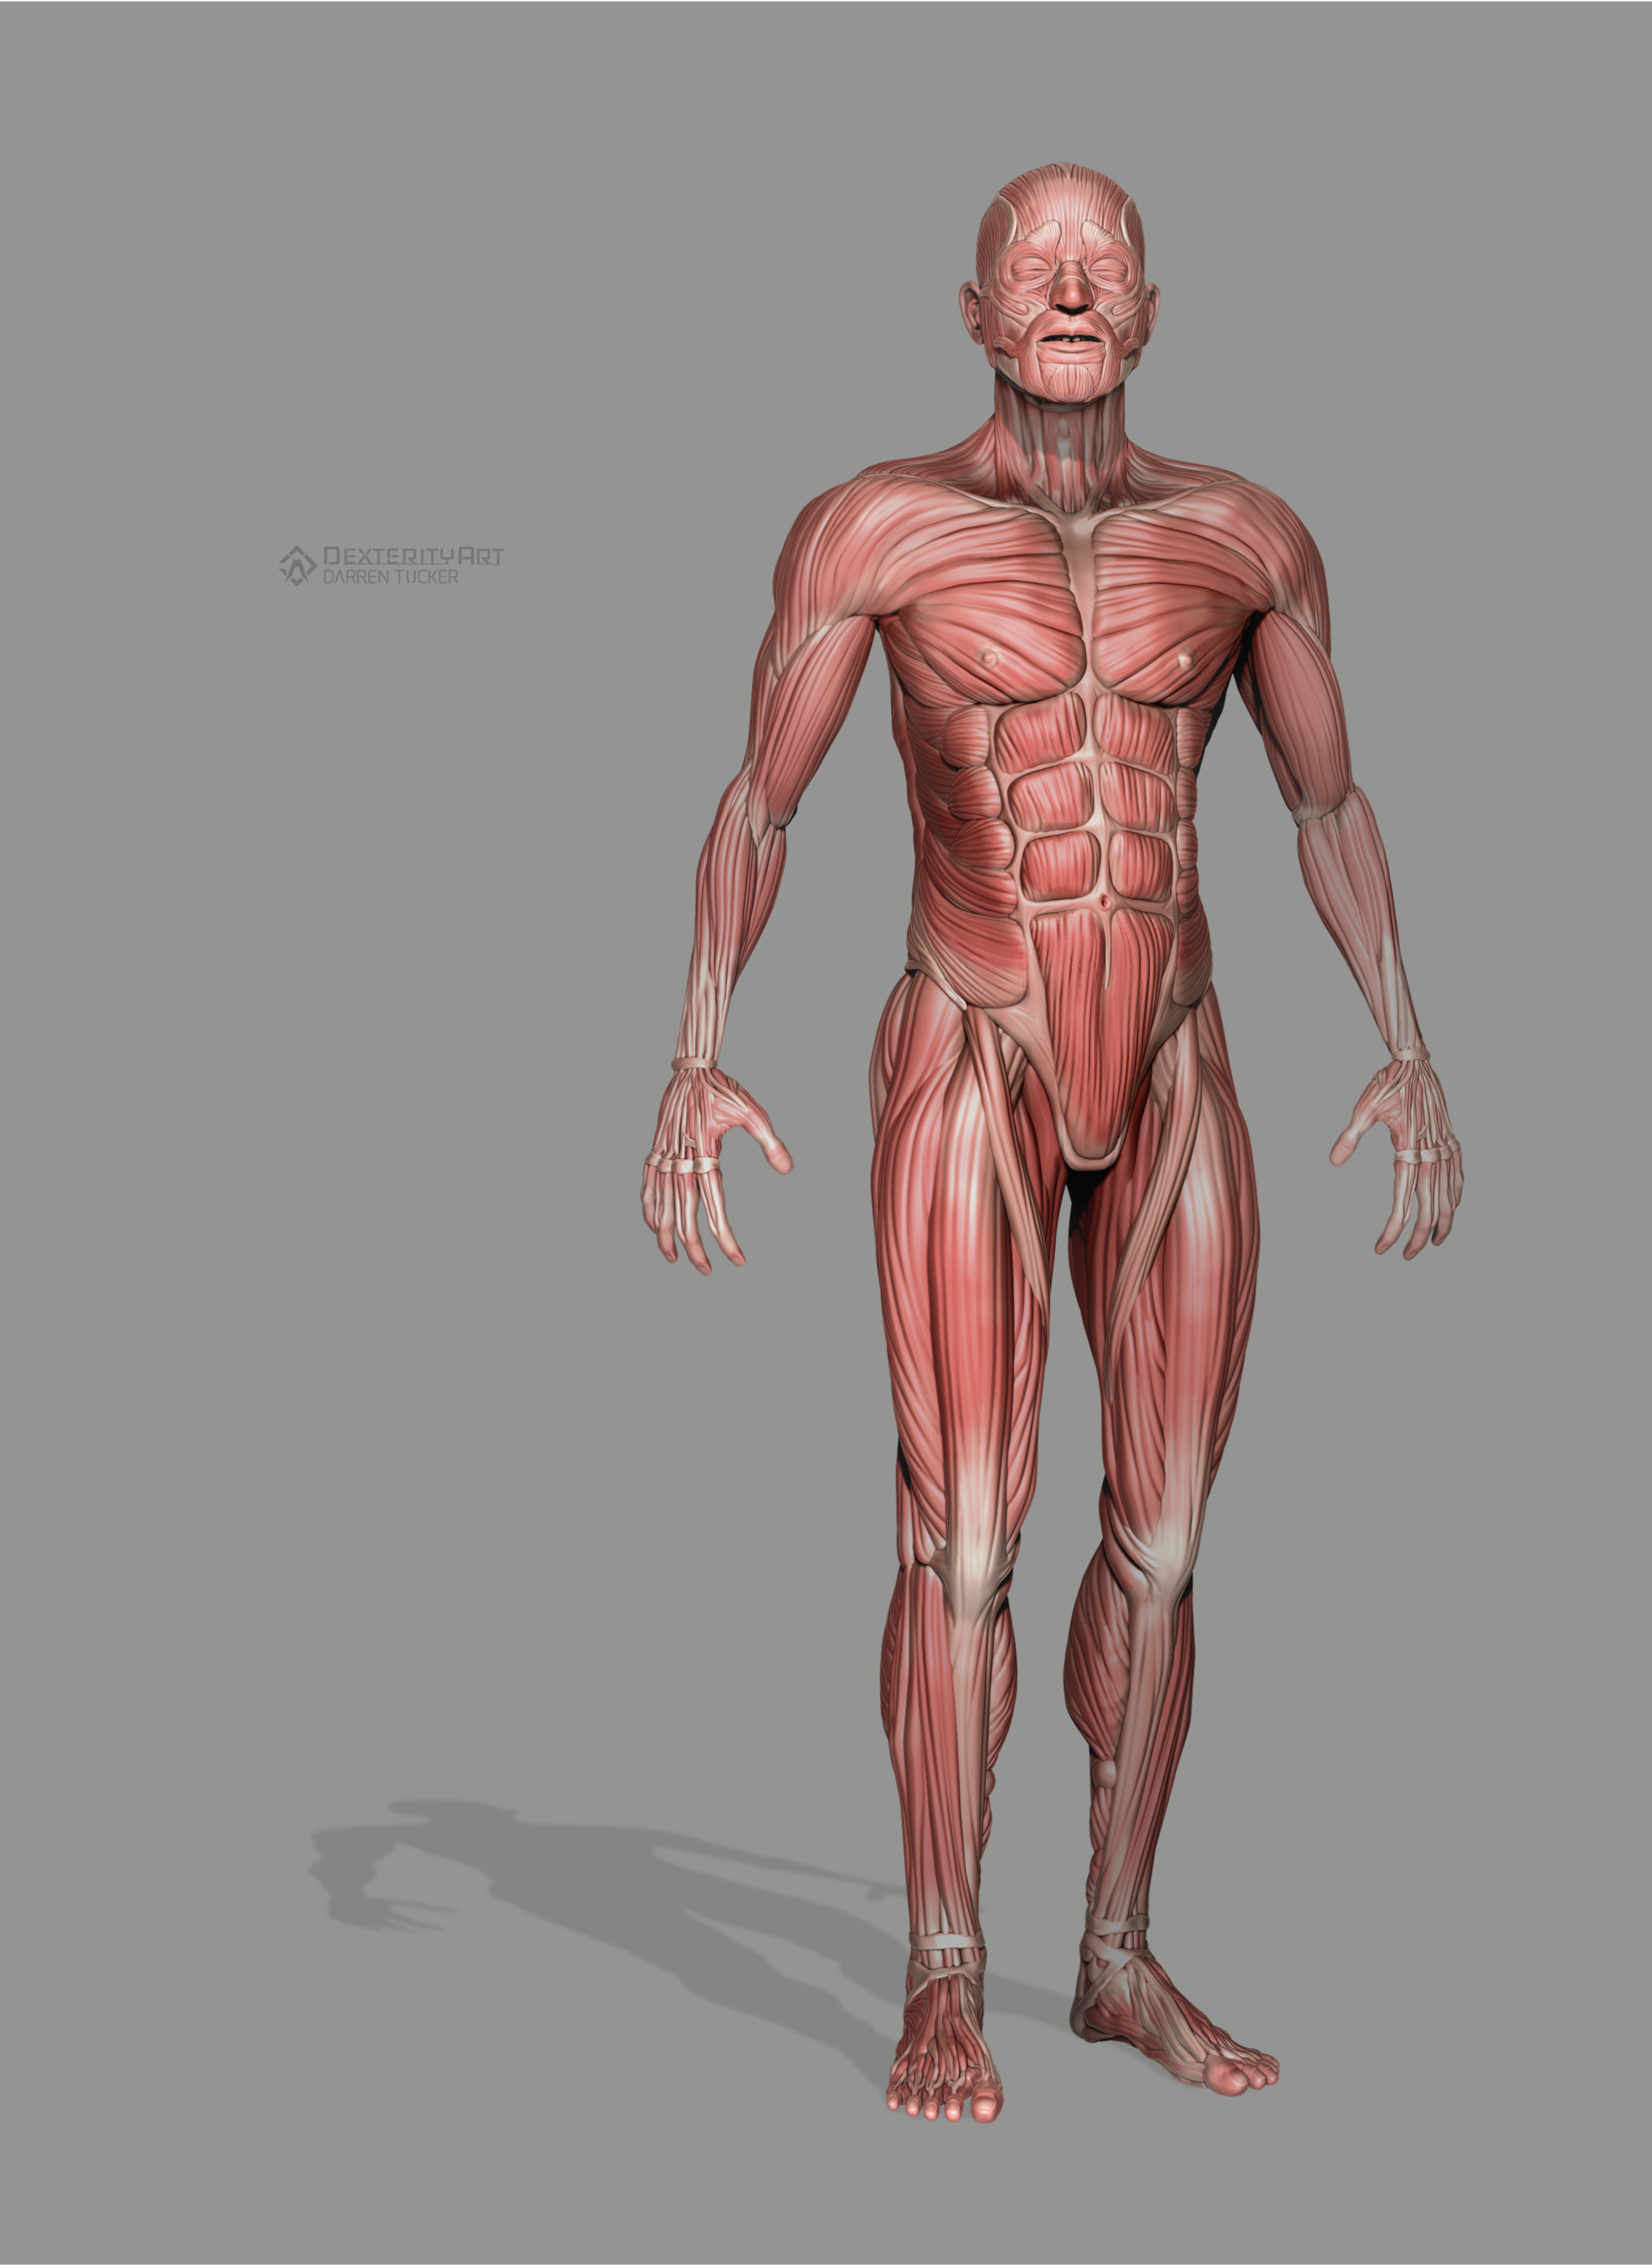 Artstation Anatomical Study Human Muscular Structure Darren Tucker